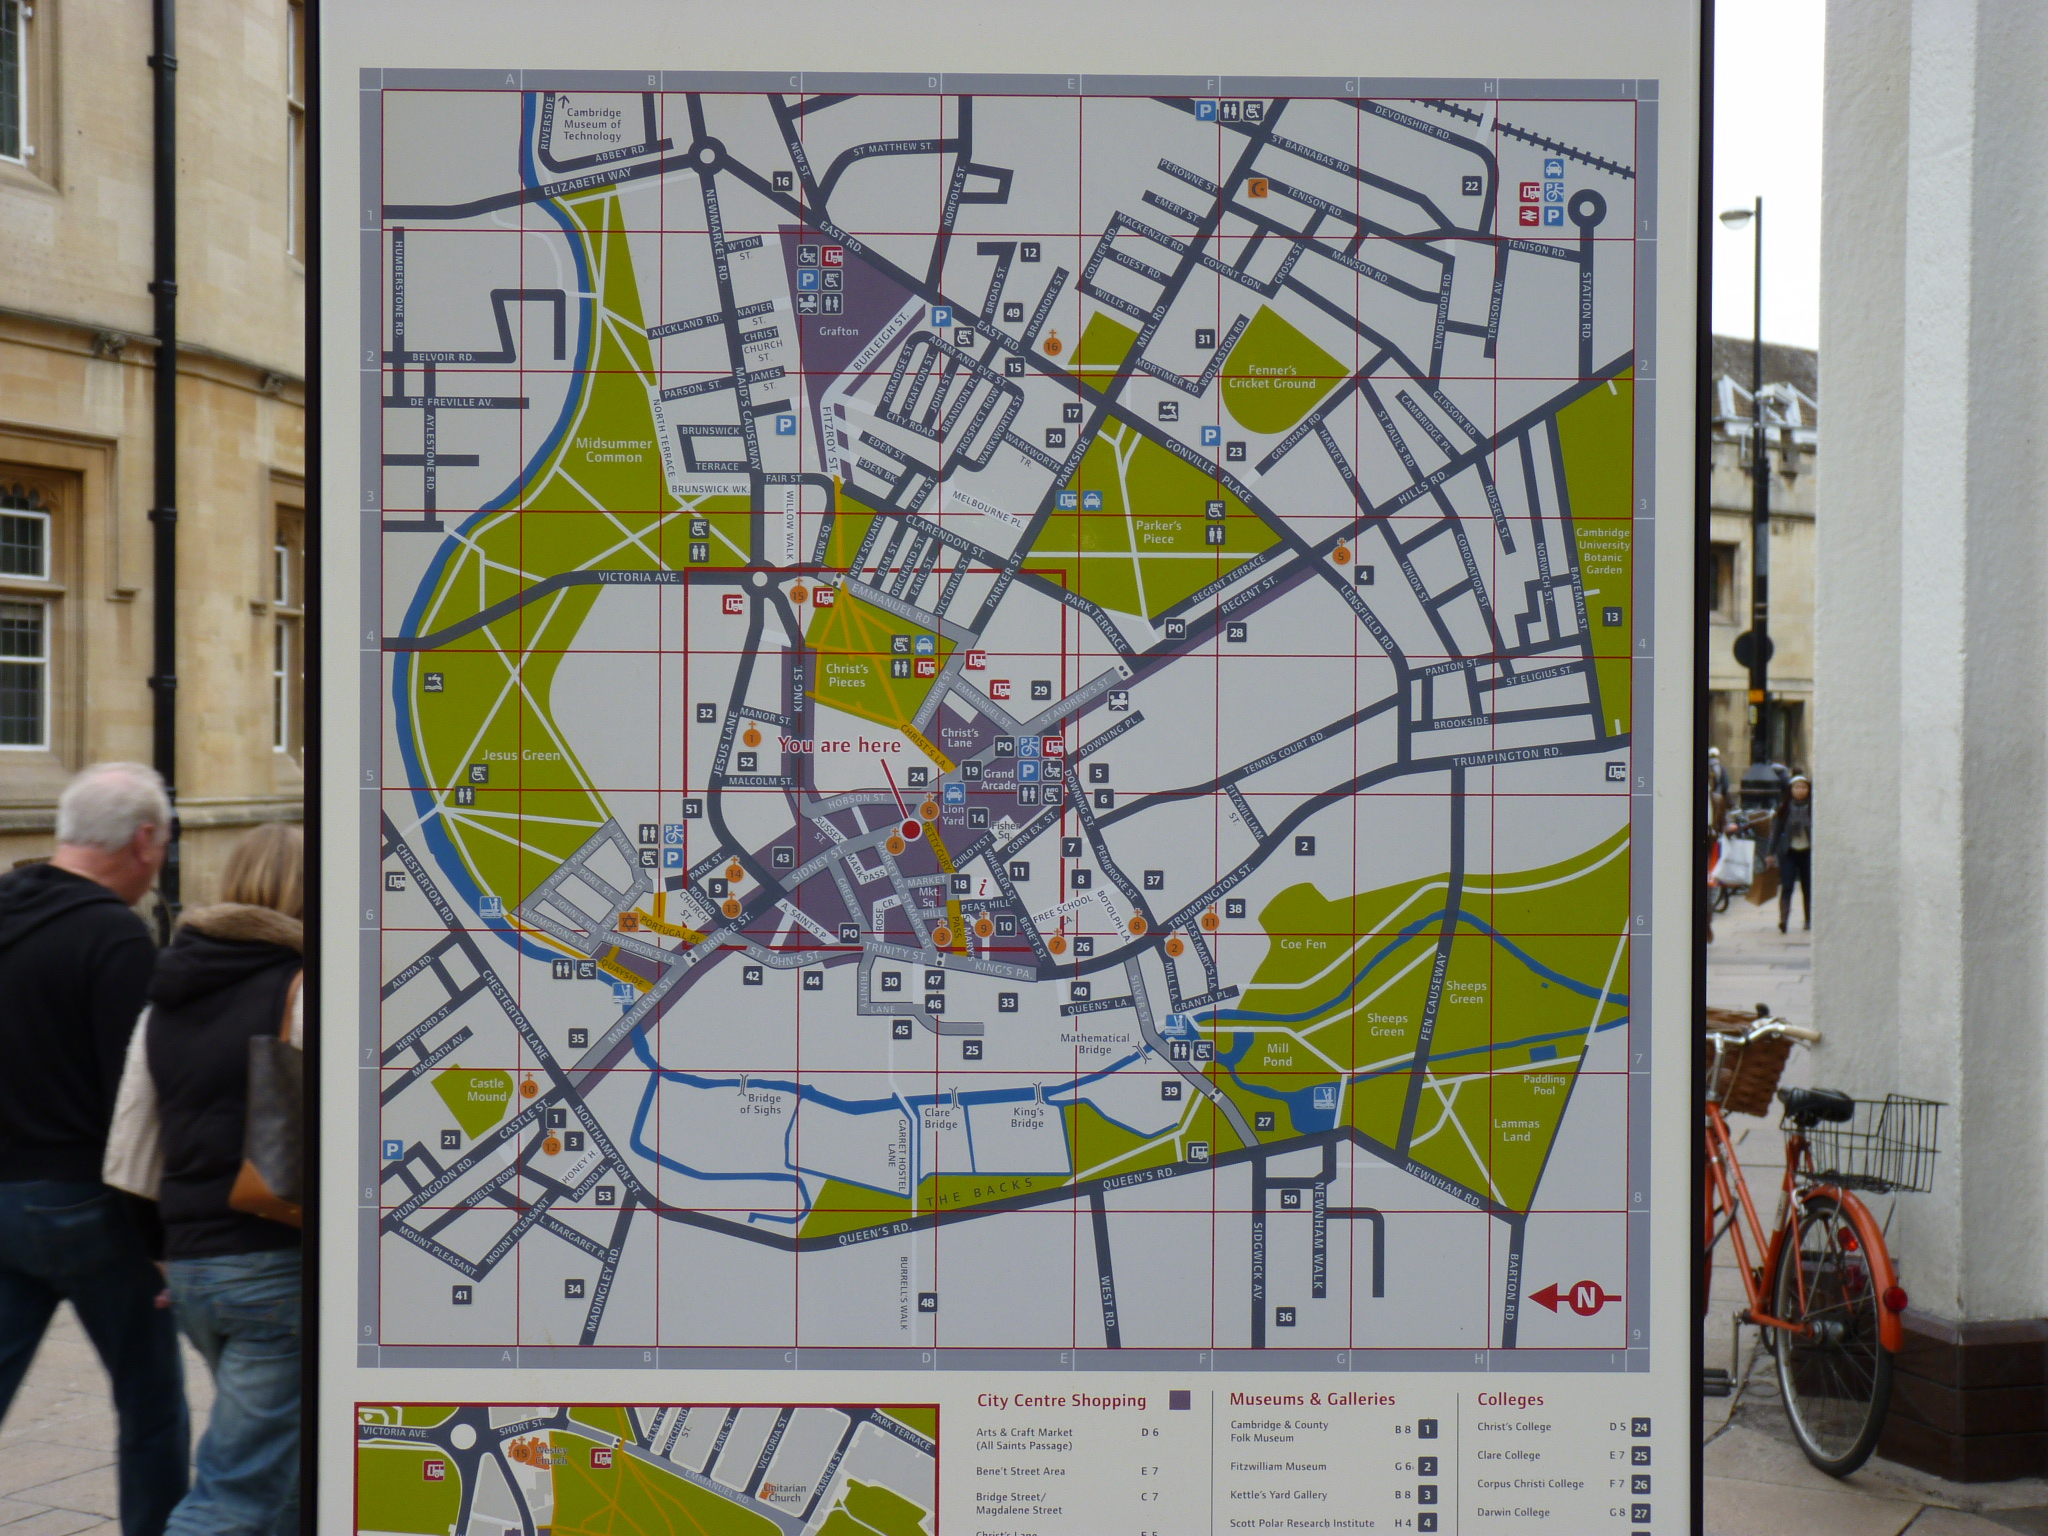 Cavendish Square Cambridge Citycentre wayfinding map